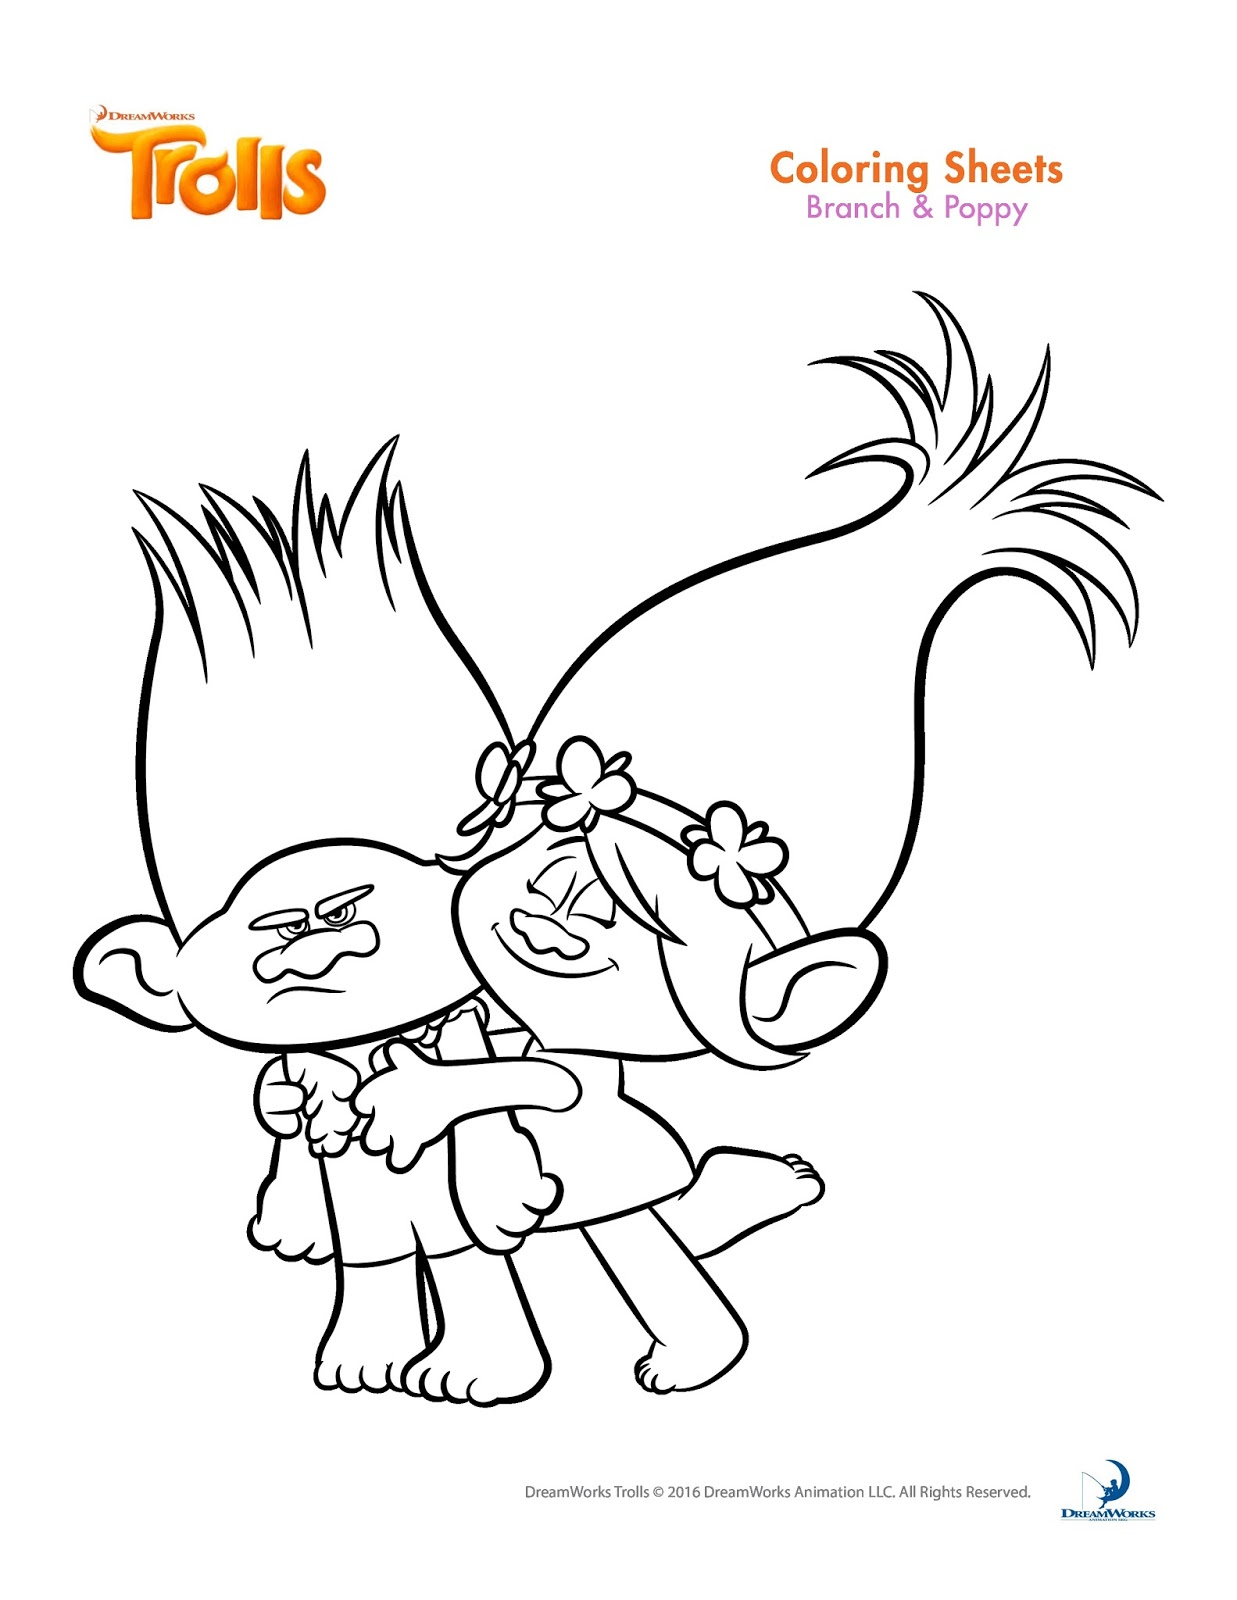 Trolls Movie In Theaters Nov 4th Free Movie Tickets And Activity Sheets